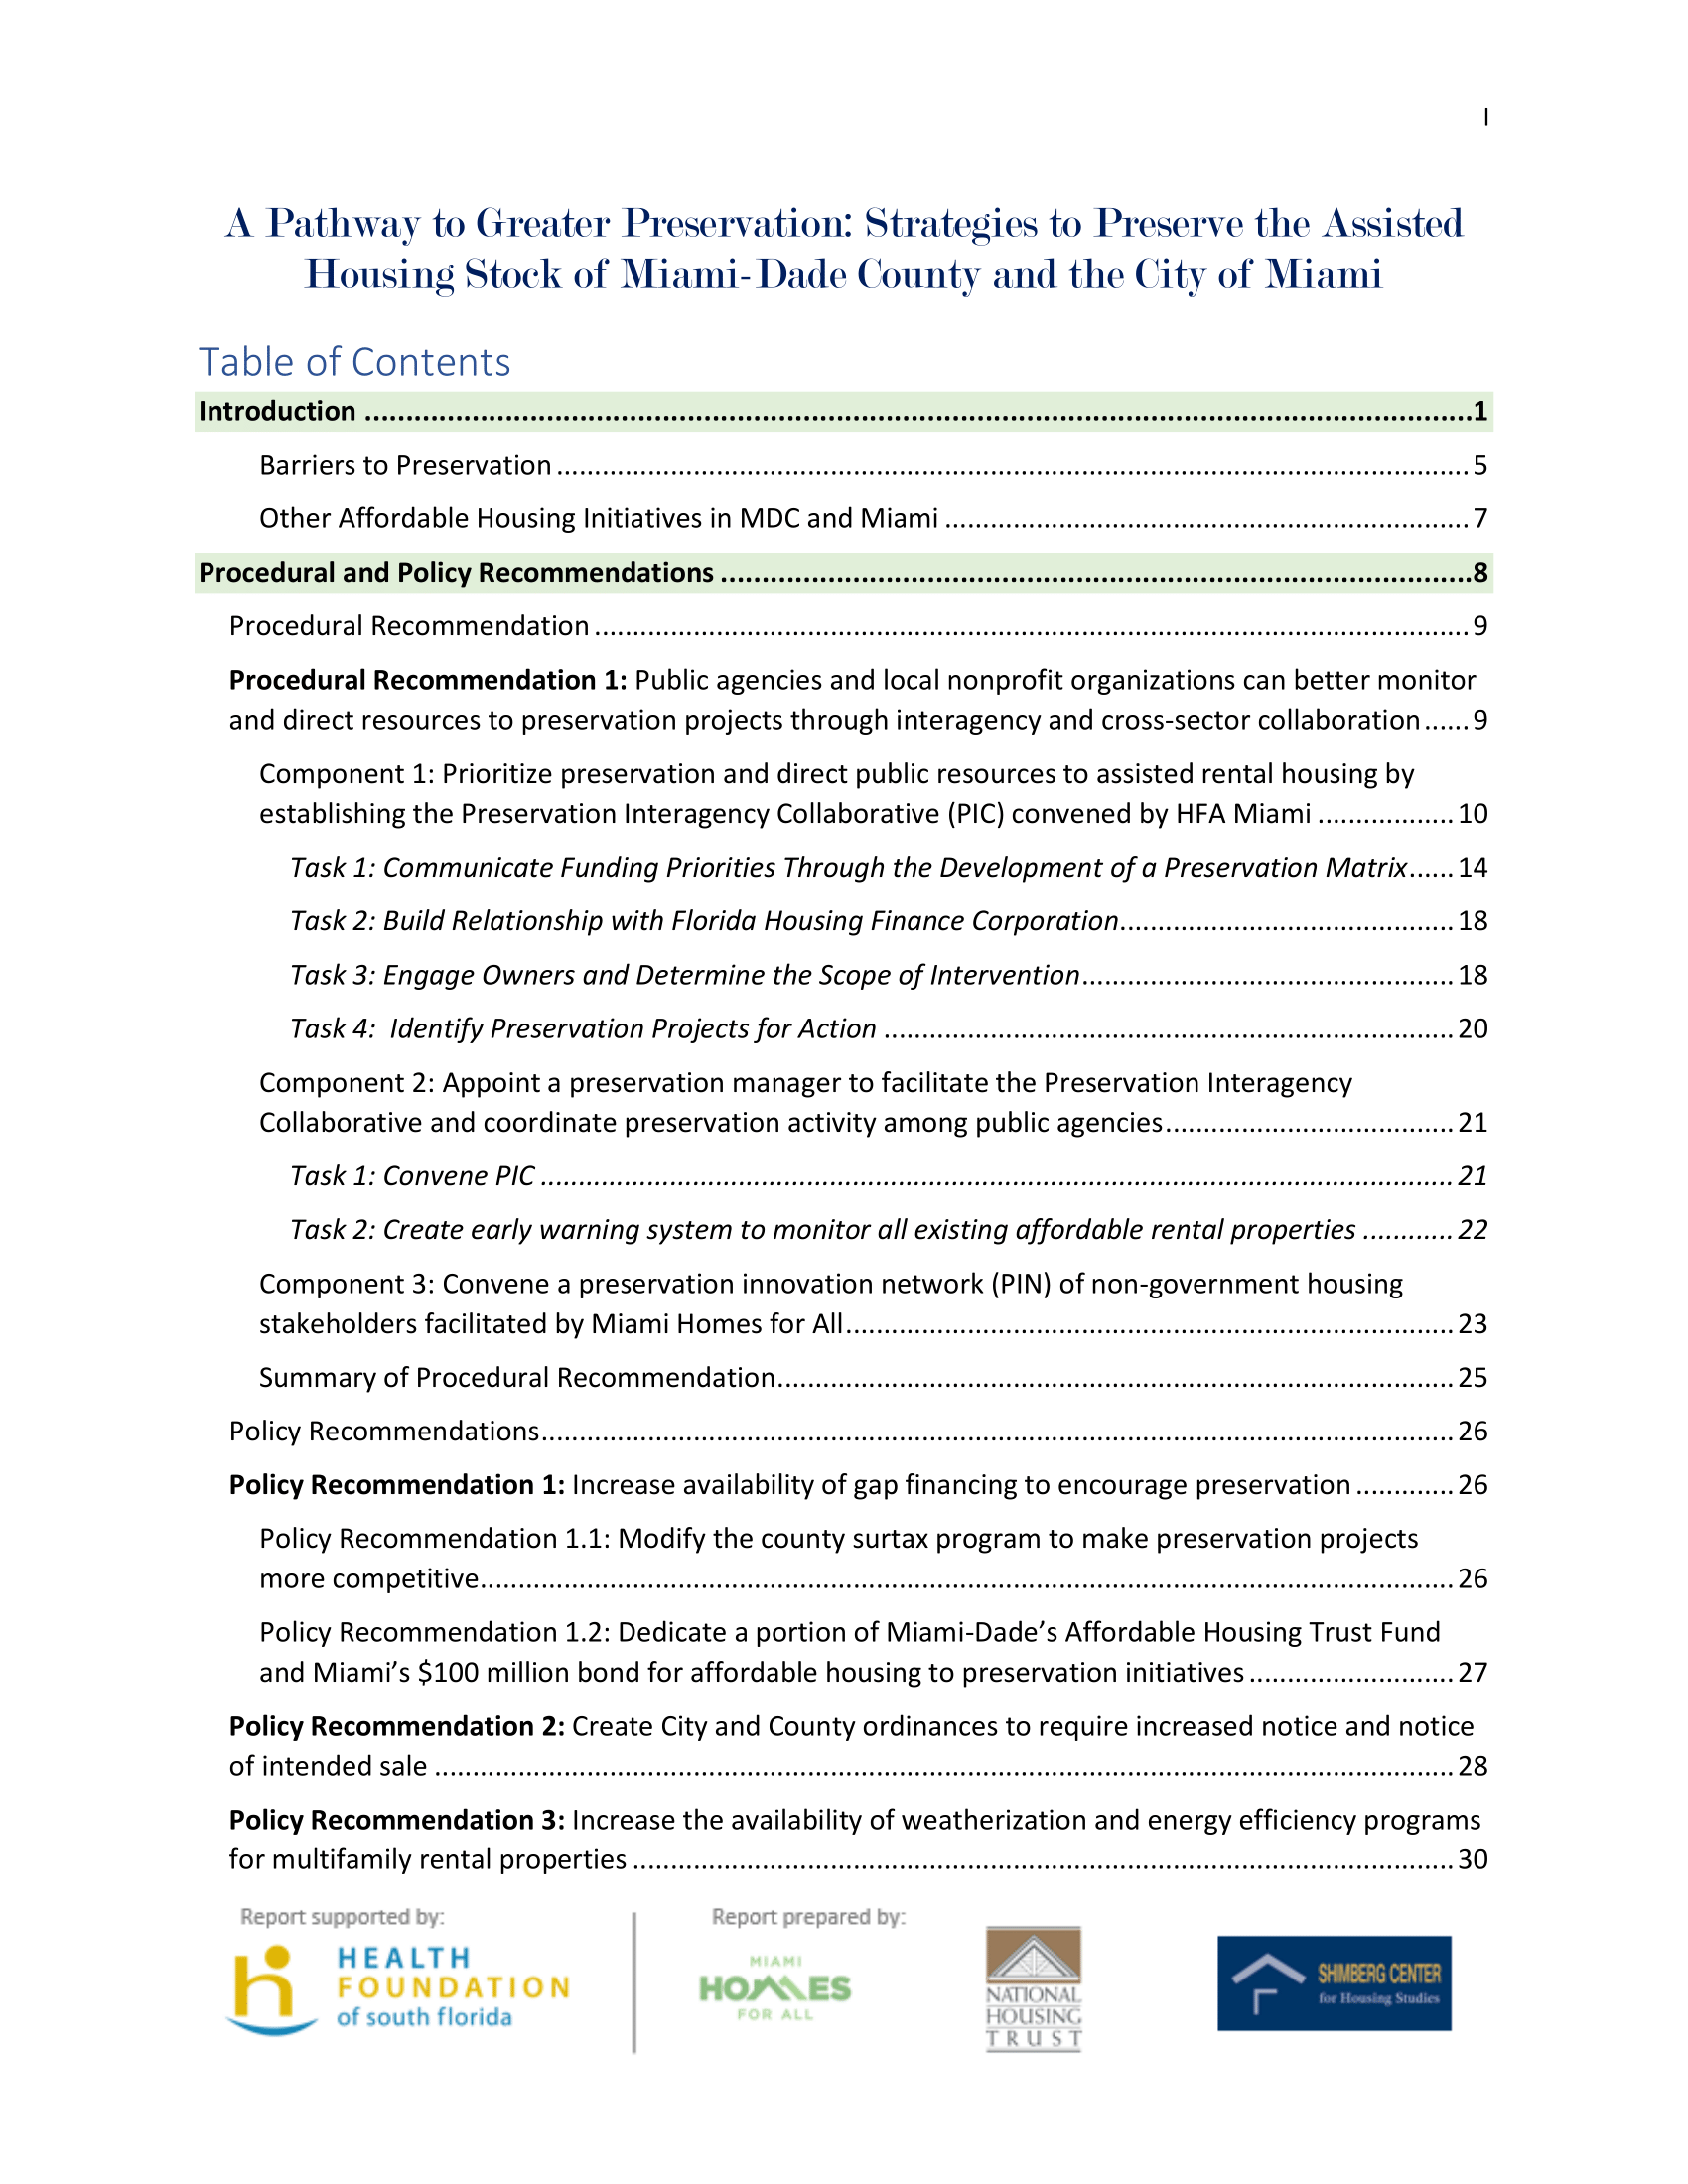 A Pathway to Greater Preservation - February 2018-05.png